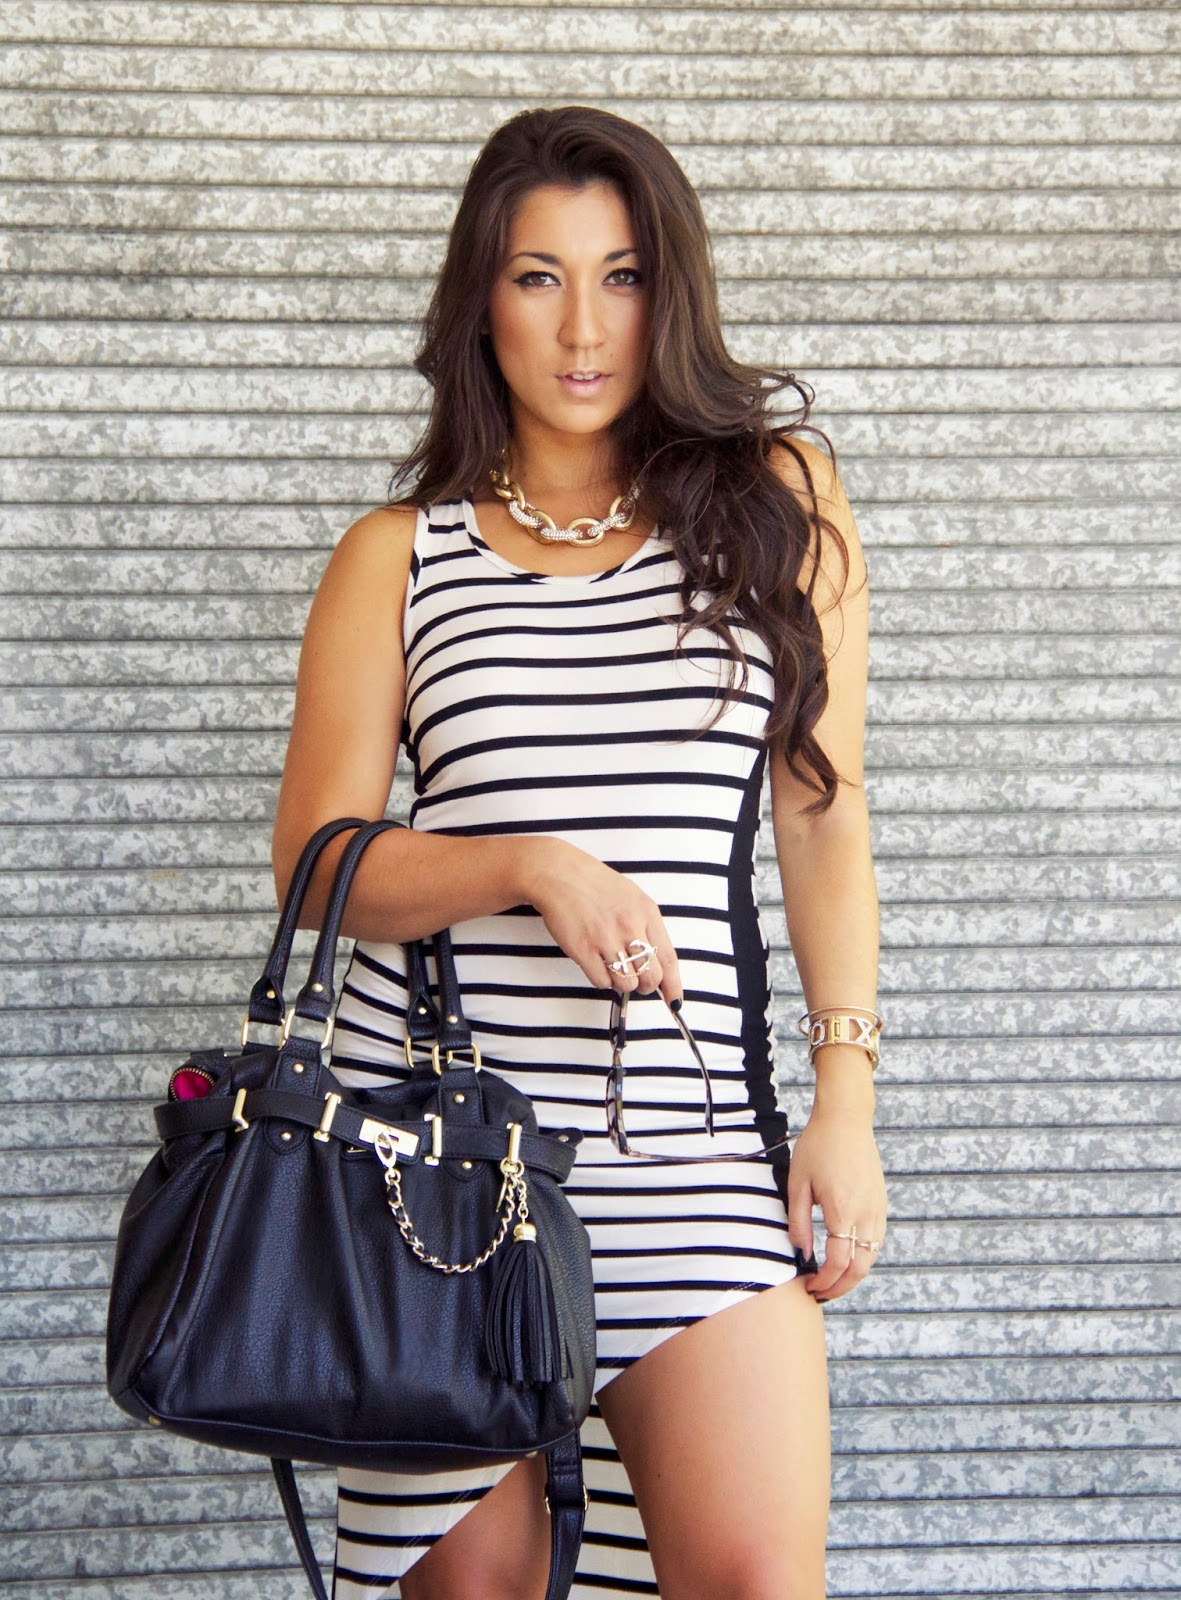 striped maxi dress with clear heels